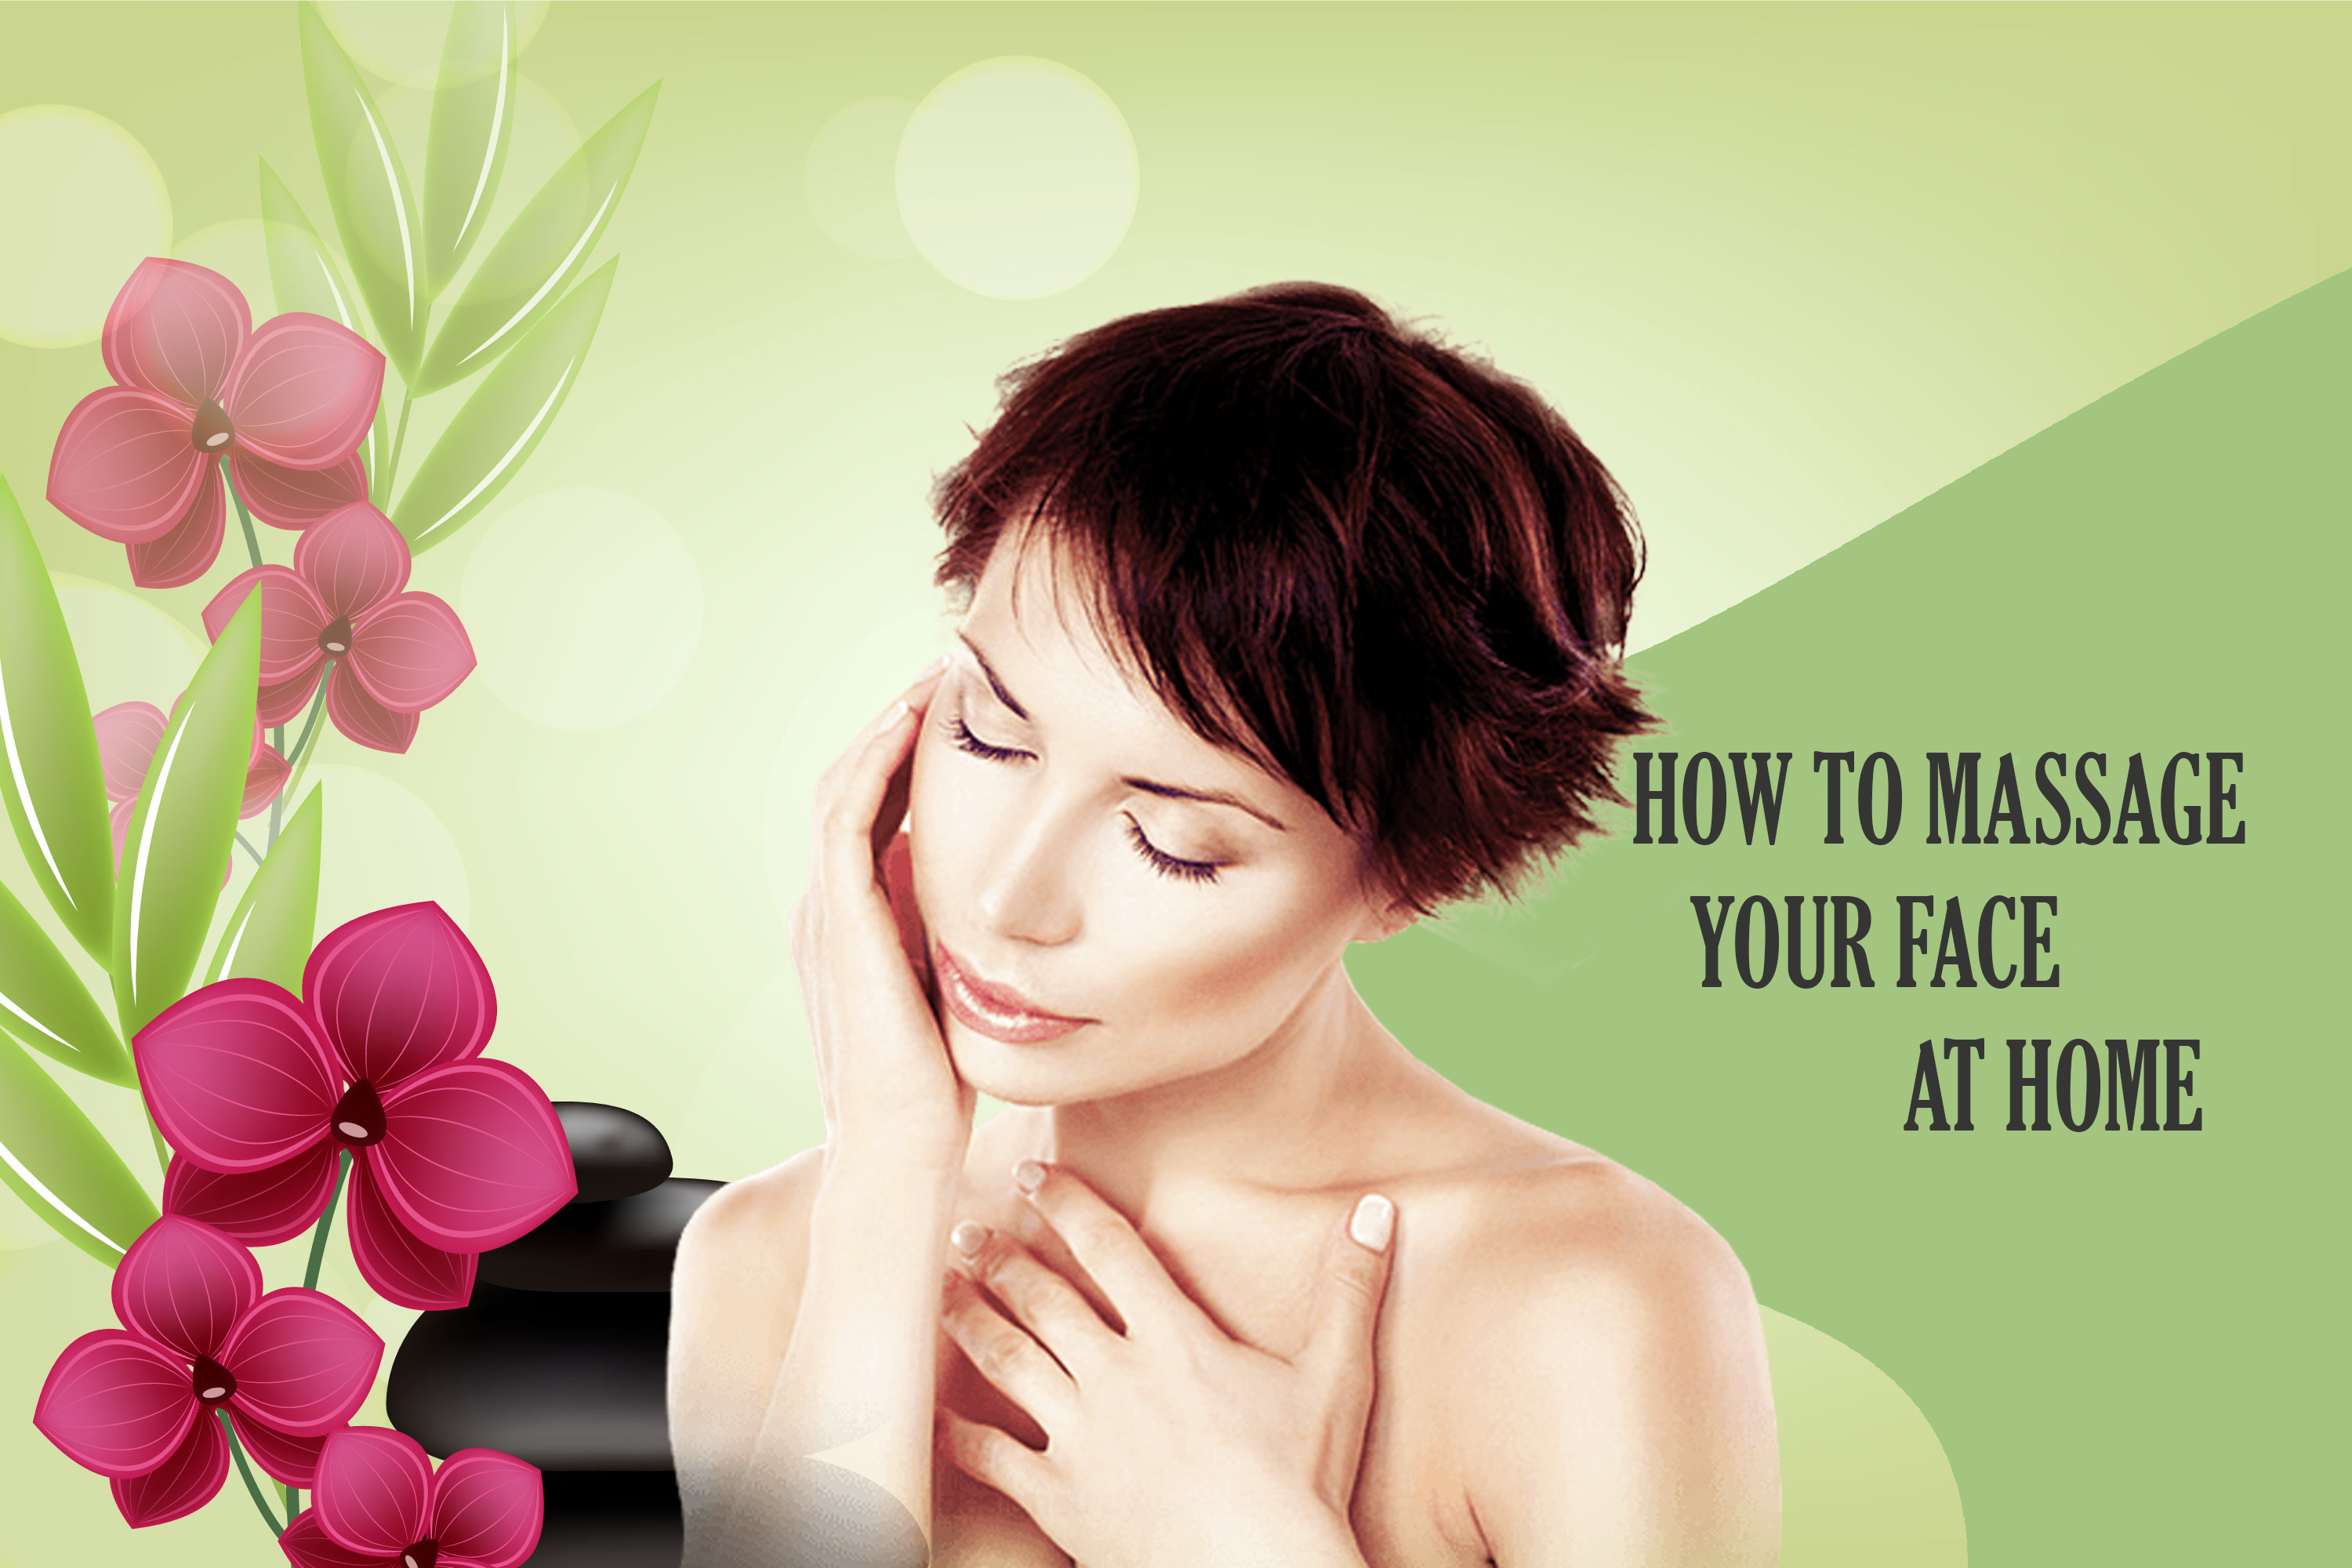 How to Do a Face Massage at Home 1